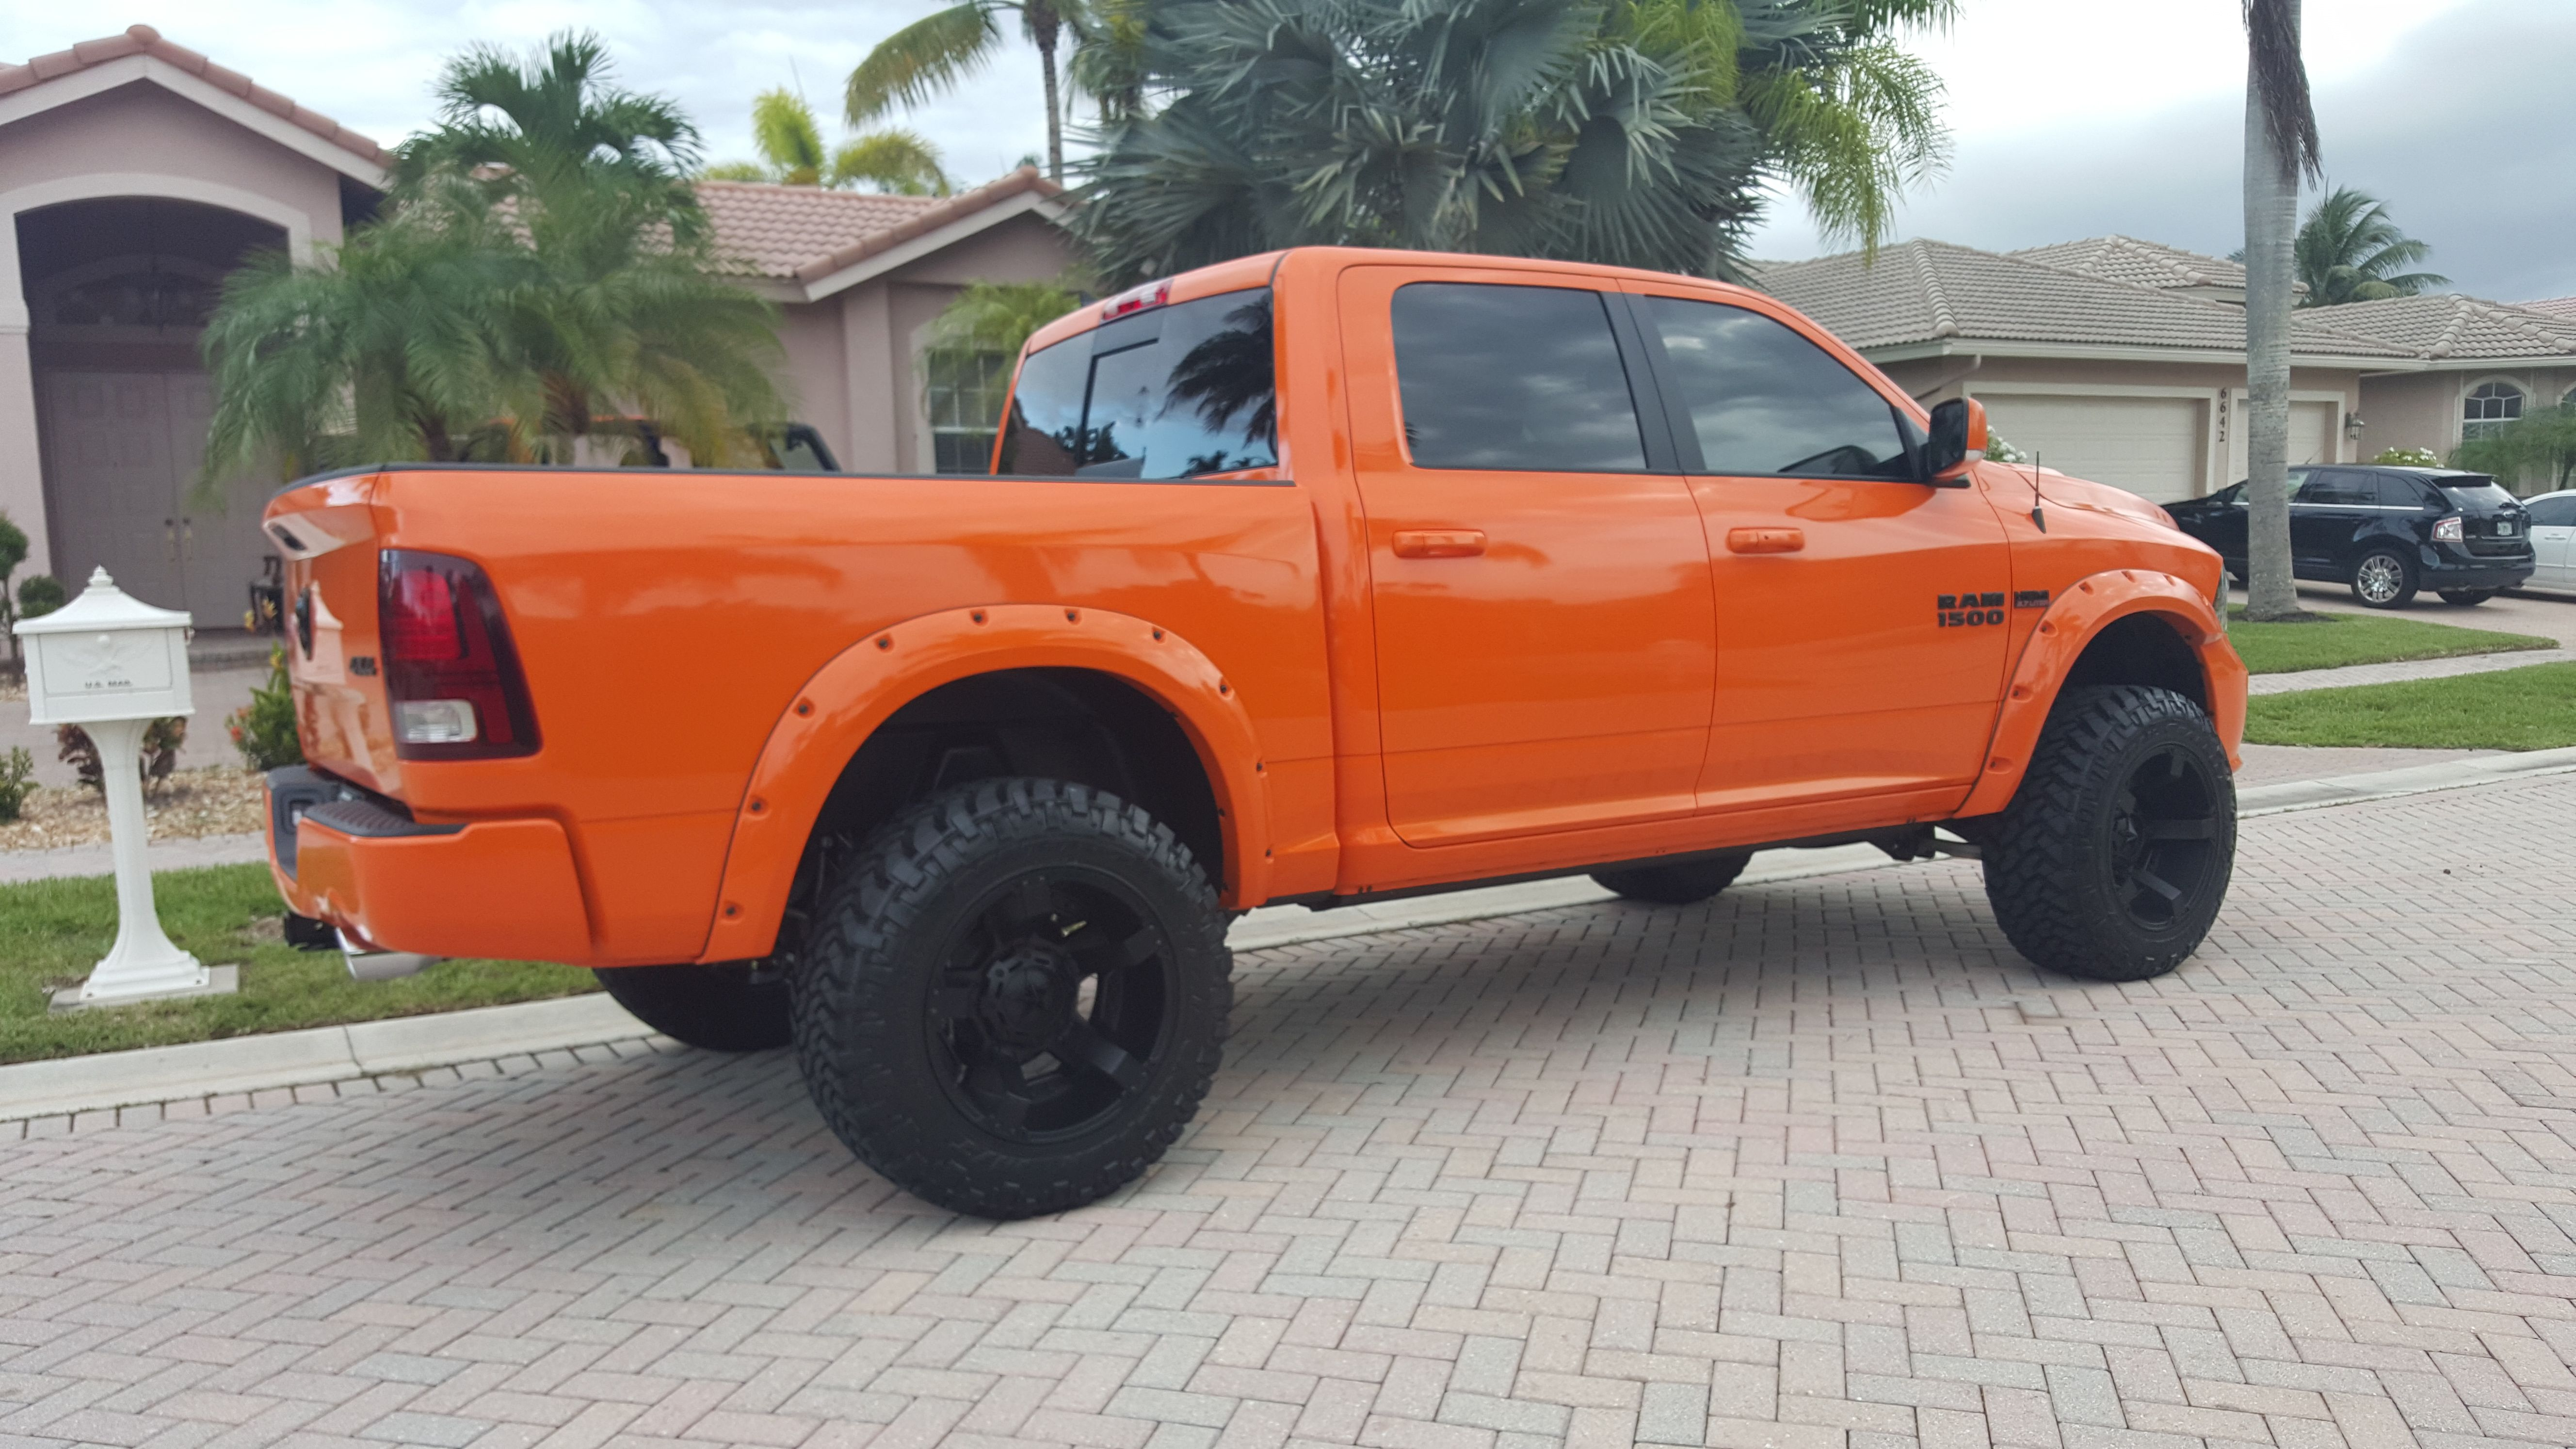 2015 ram 1500 sobe edition ignition orange sobe jeeps custom jeep builder rental